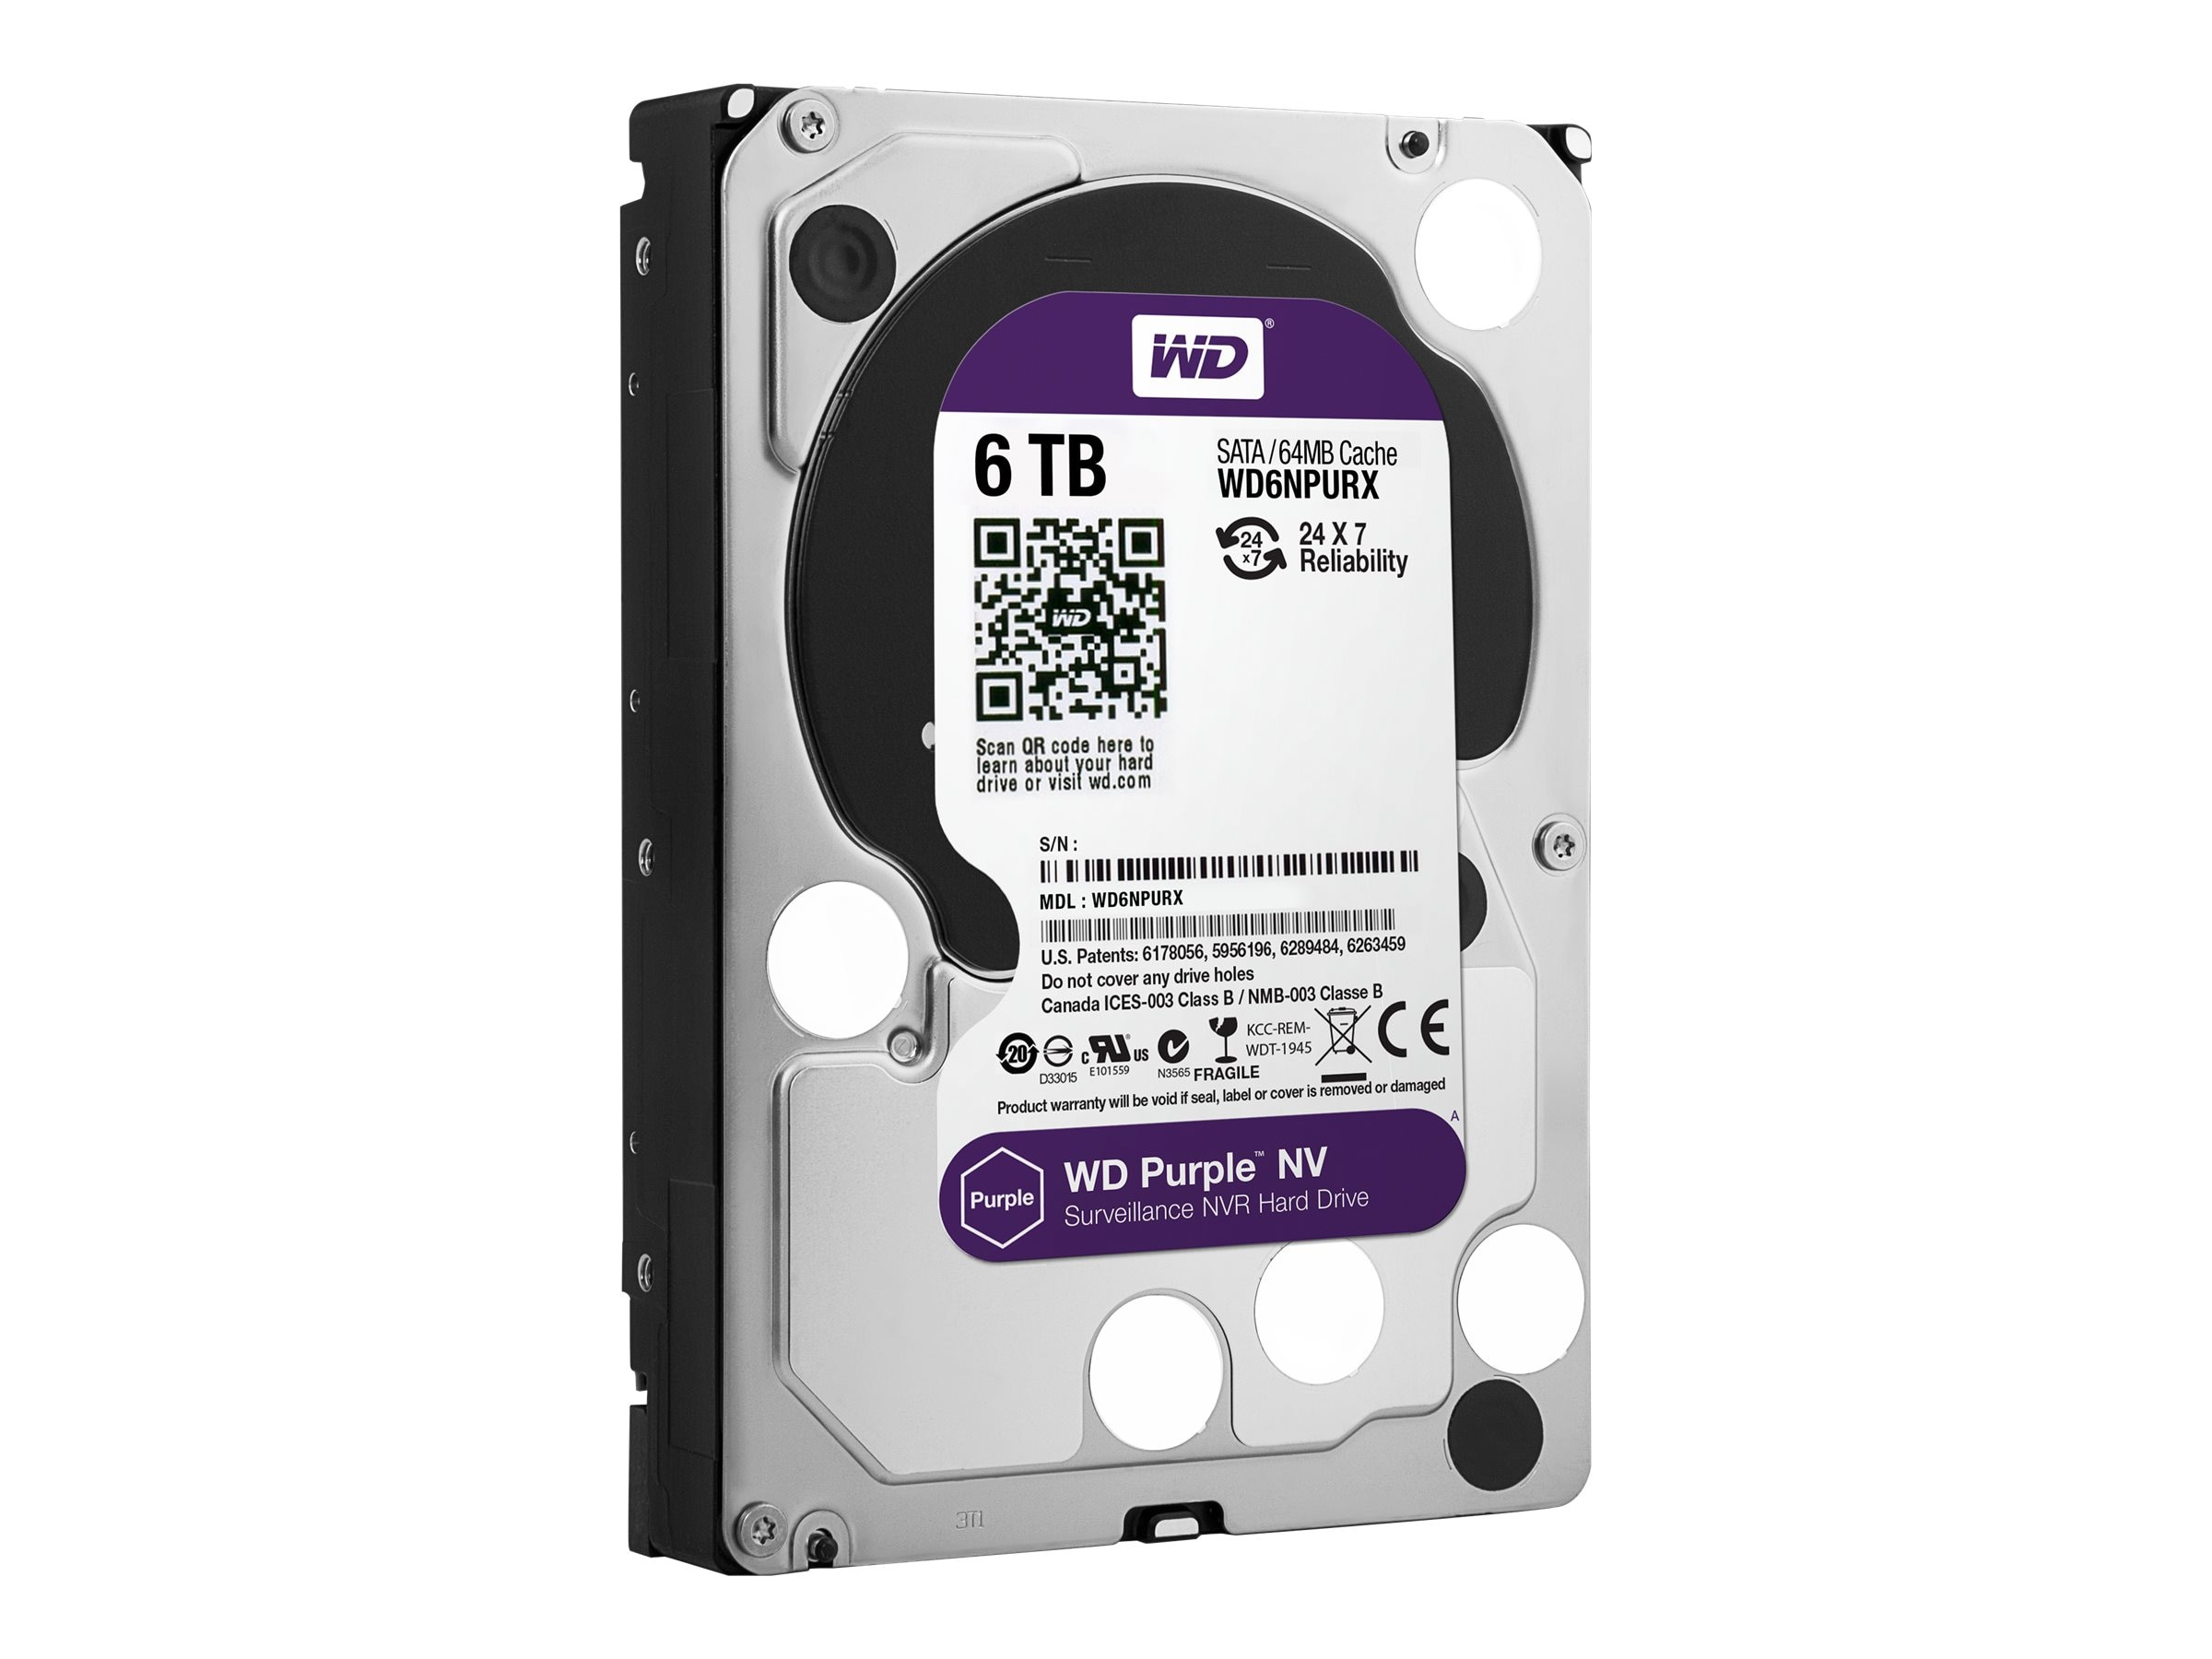 WD 6TB WD Purple NV SATA 6Gb s 3.5 Internal Hard Drive, WD6NPURX